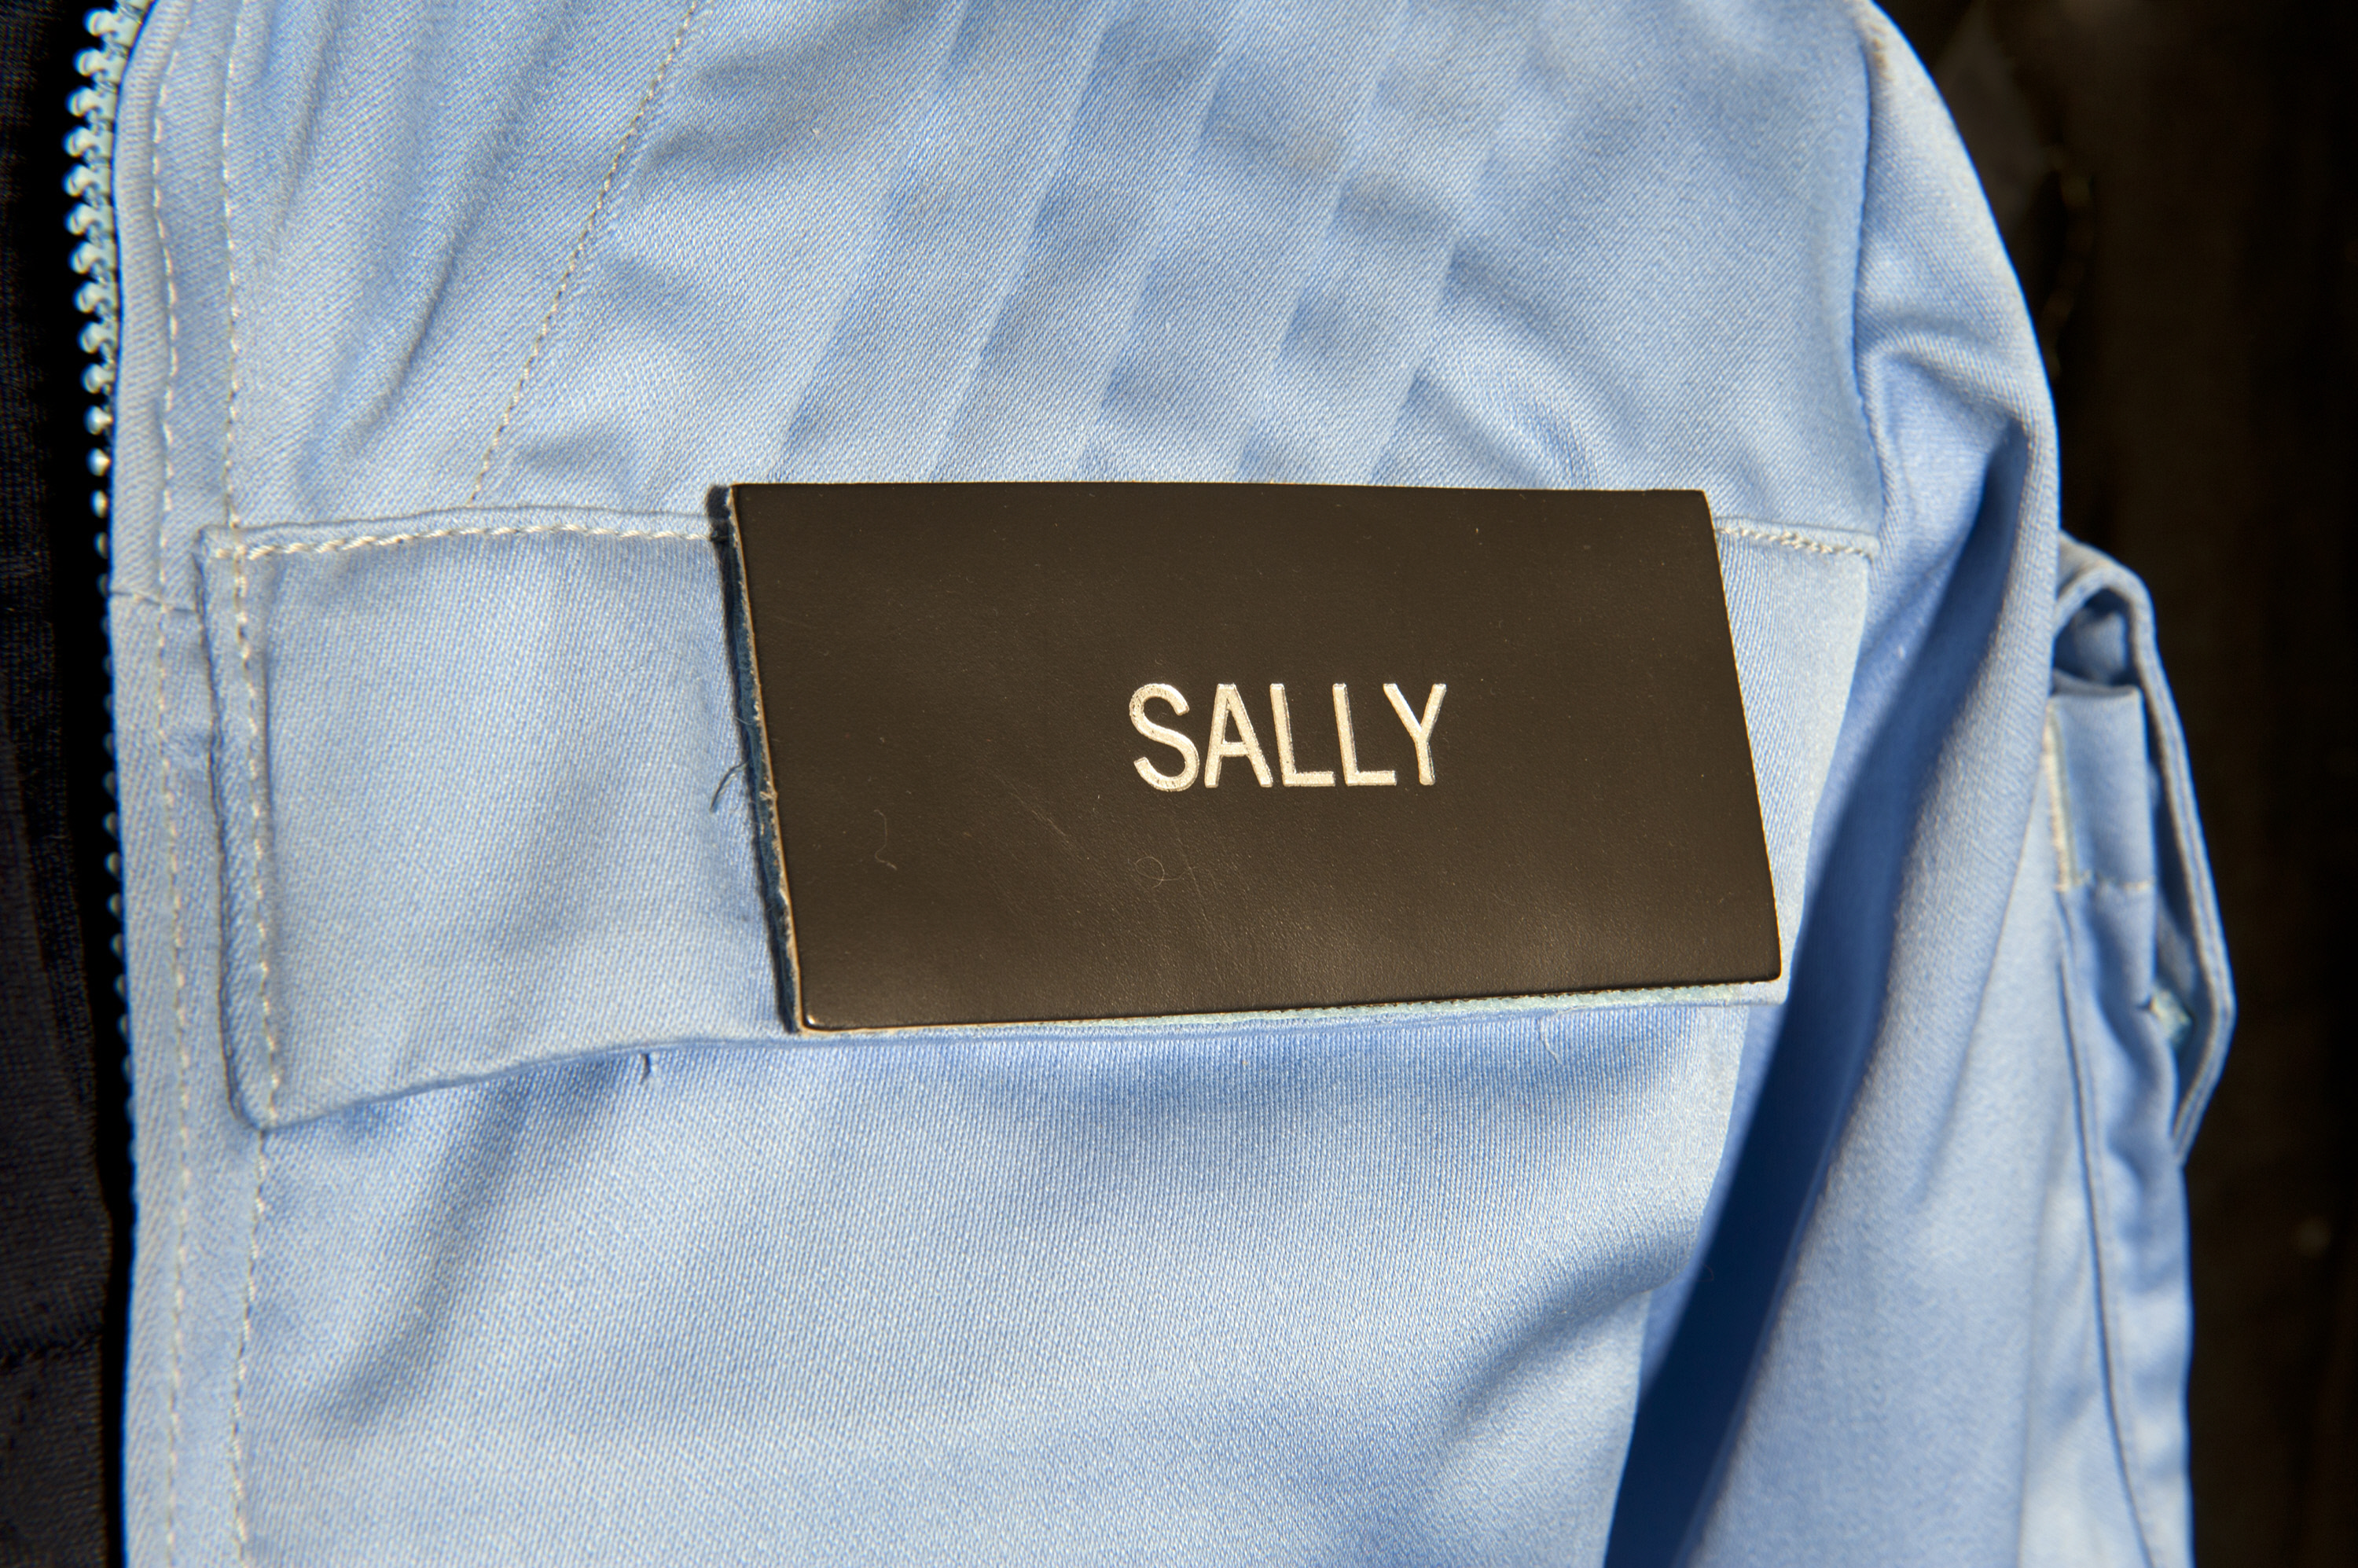 sally ride nasa name patch - photo #14